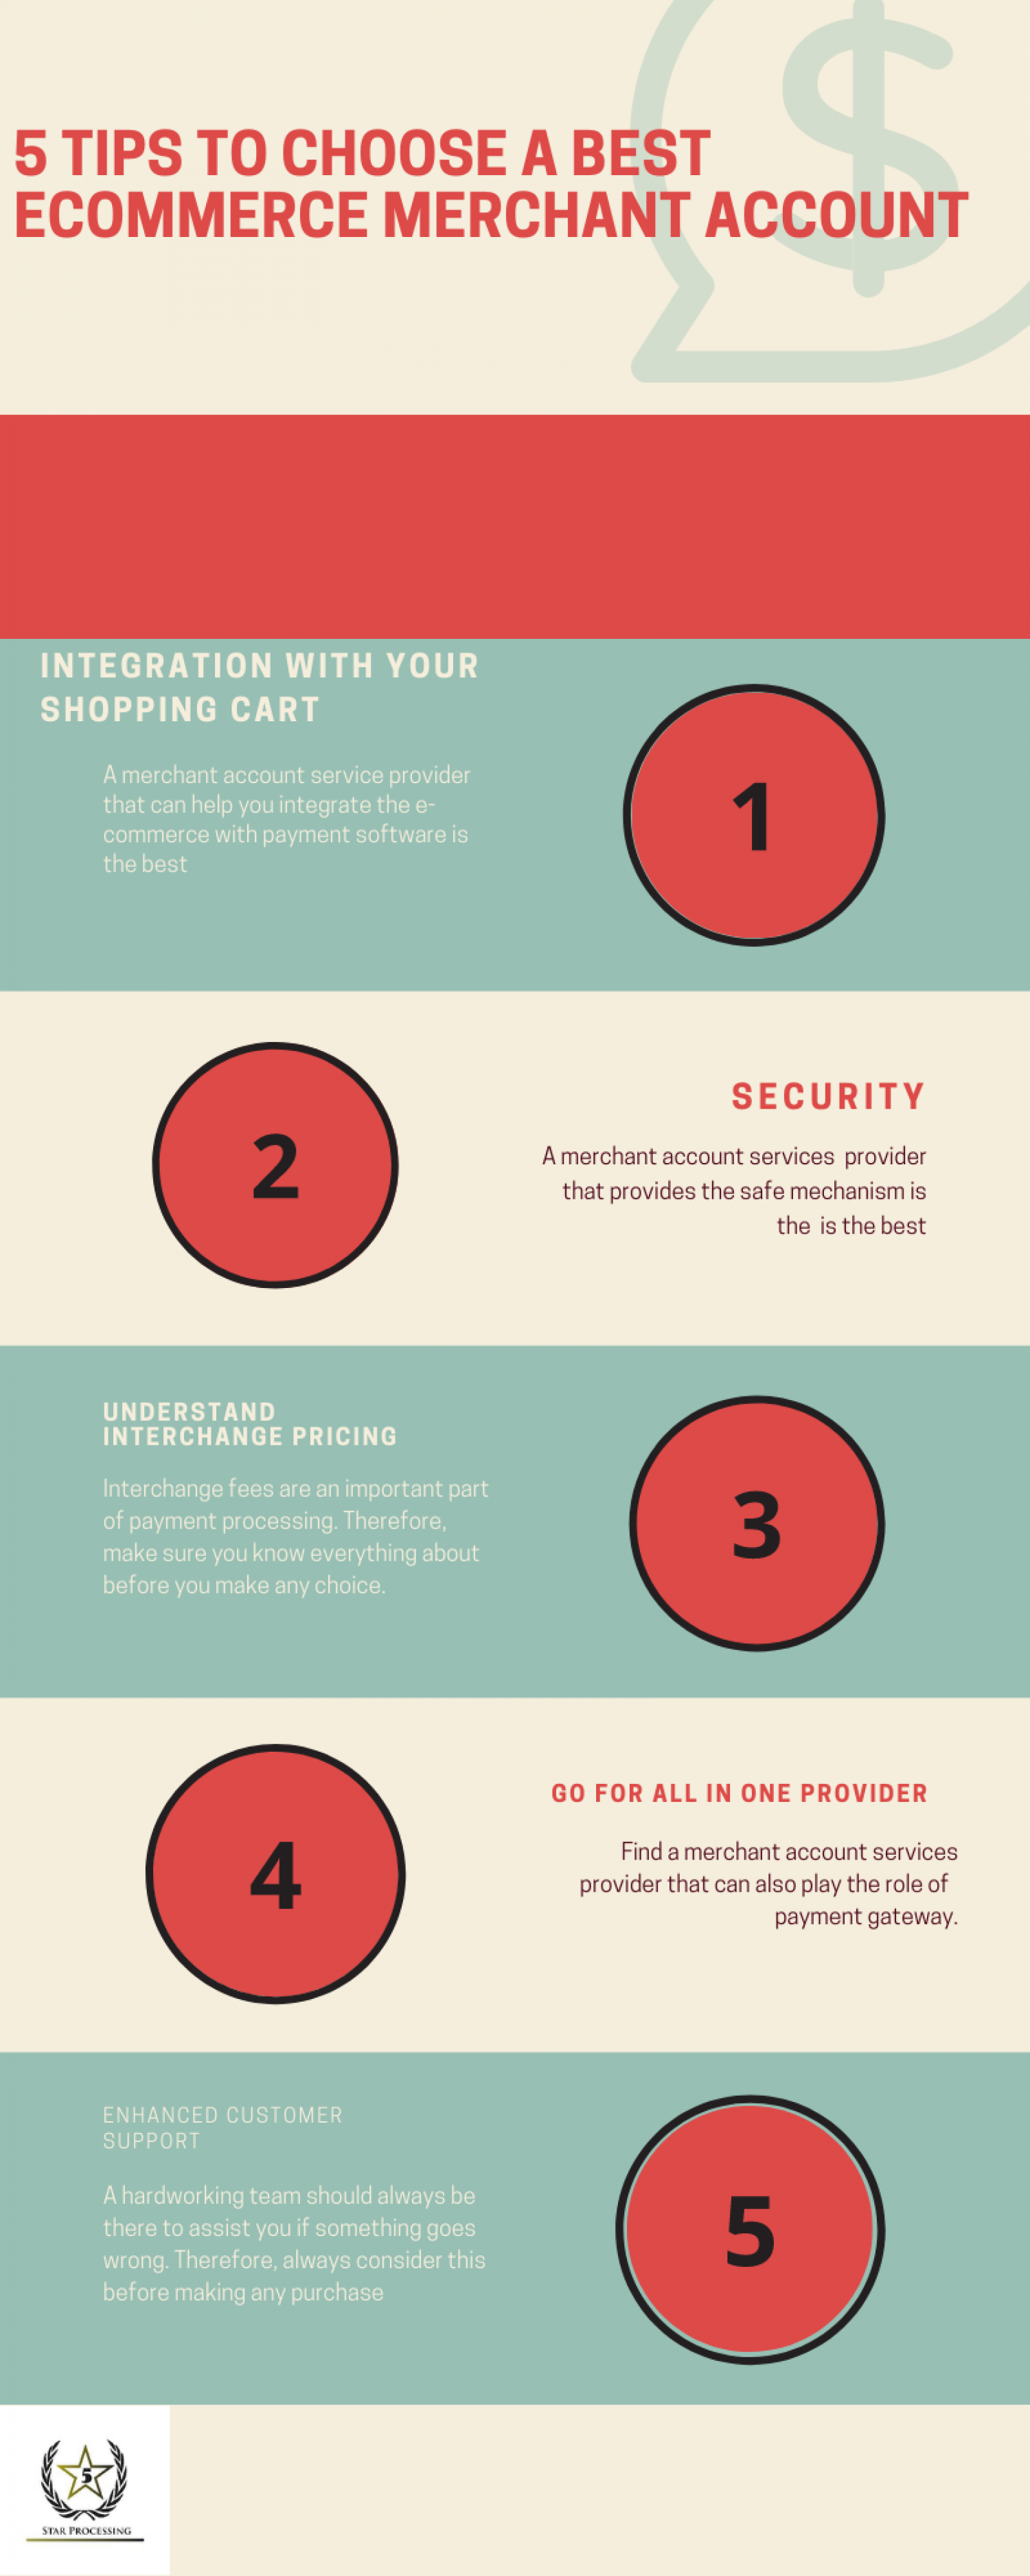 Tips to choose best Ecommerce merchant account Infographic